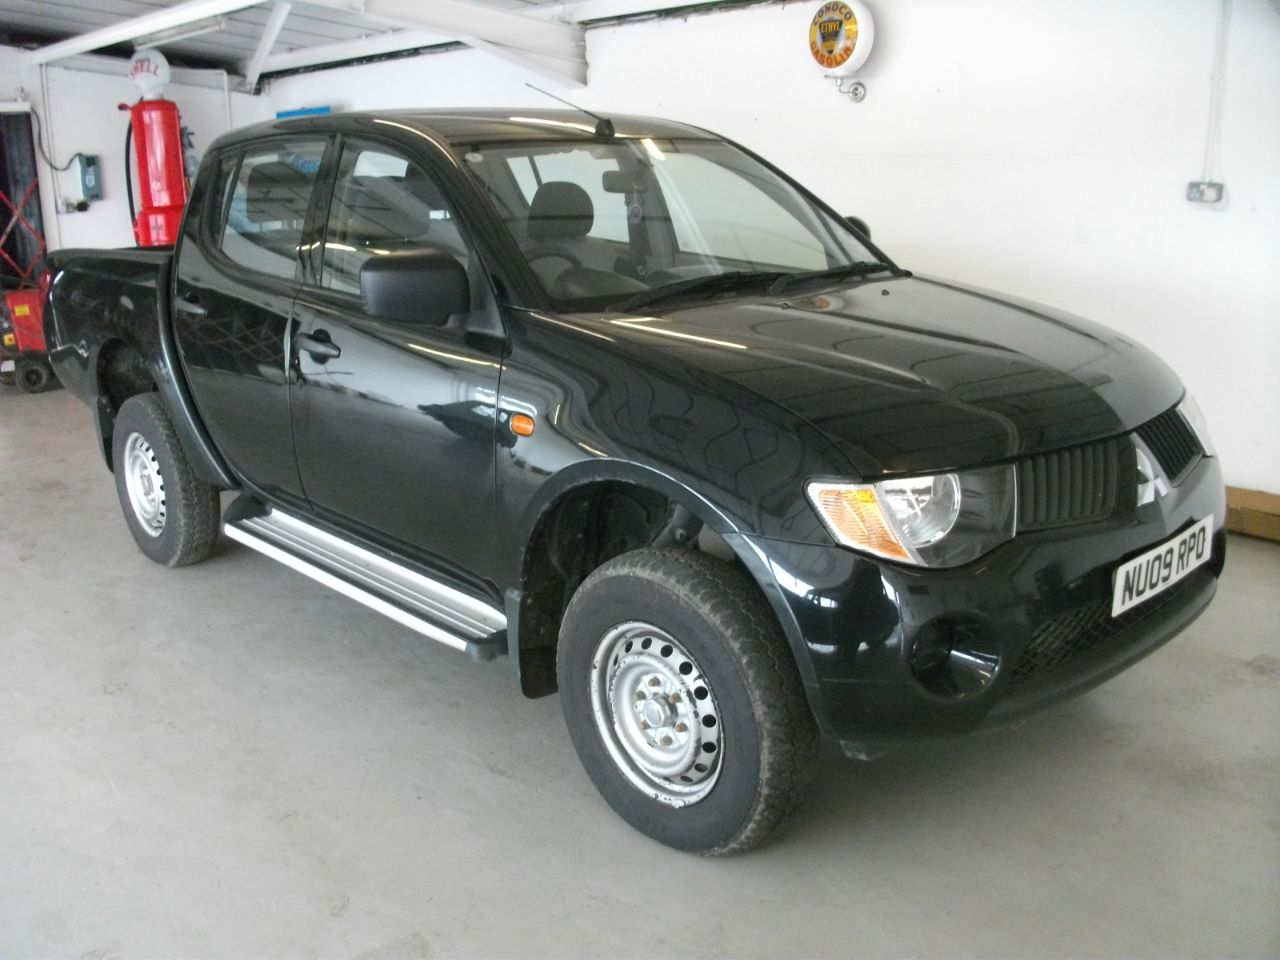 Mitsubishi L200 2.5 Double Cab DI-D 4Life 4WD 134Bhp Pick-up Diesel Black at Lido Garage Hartlepool